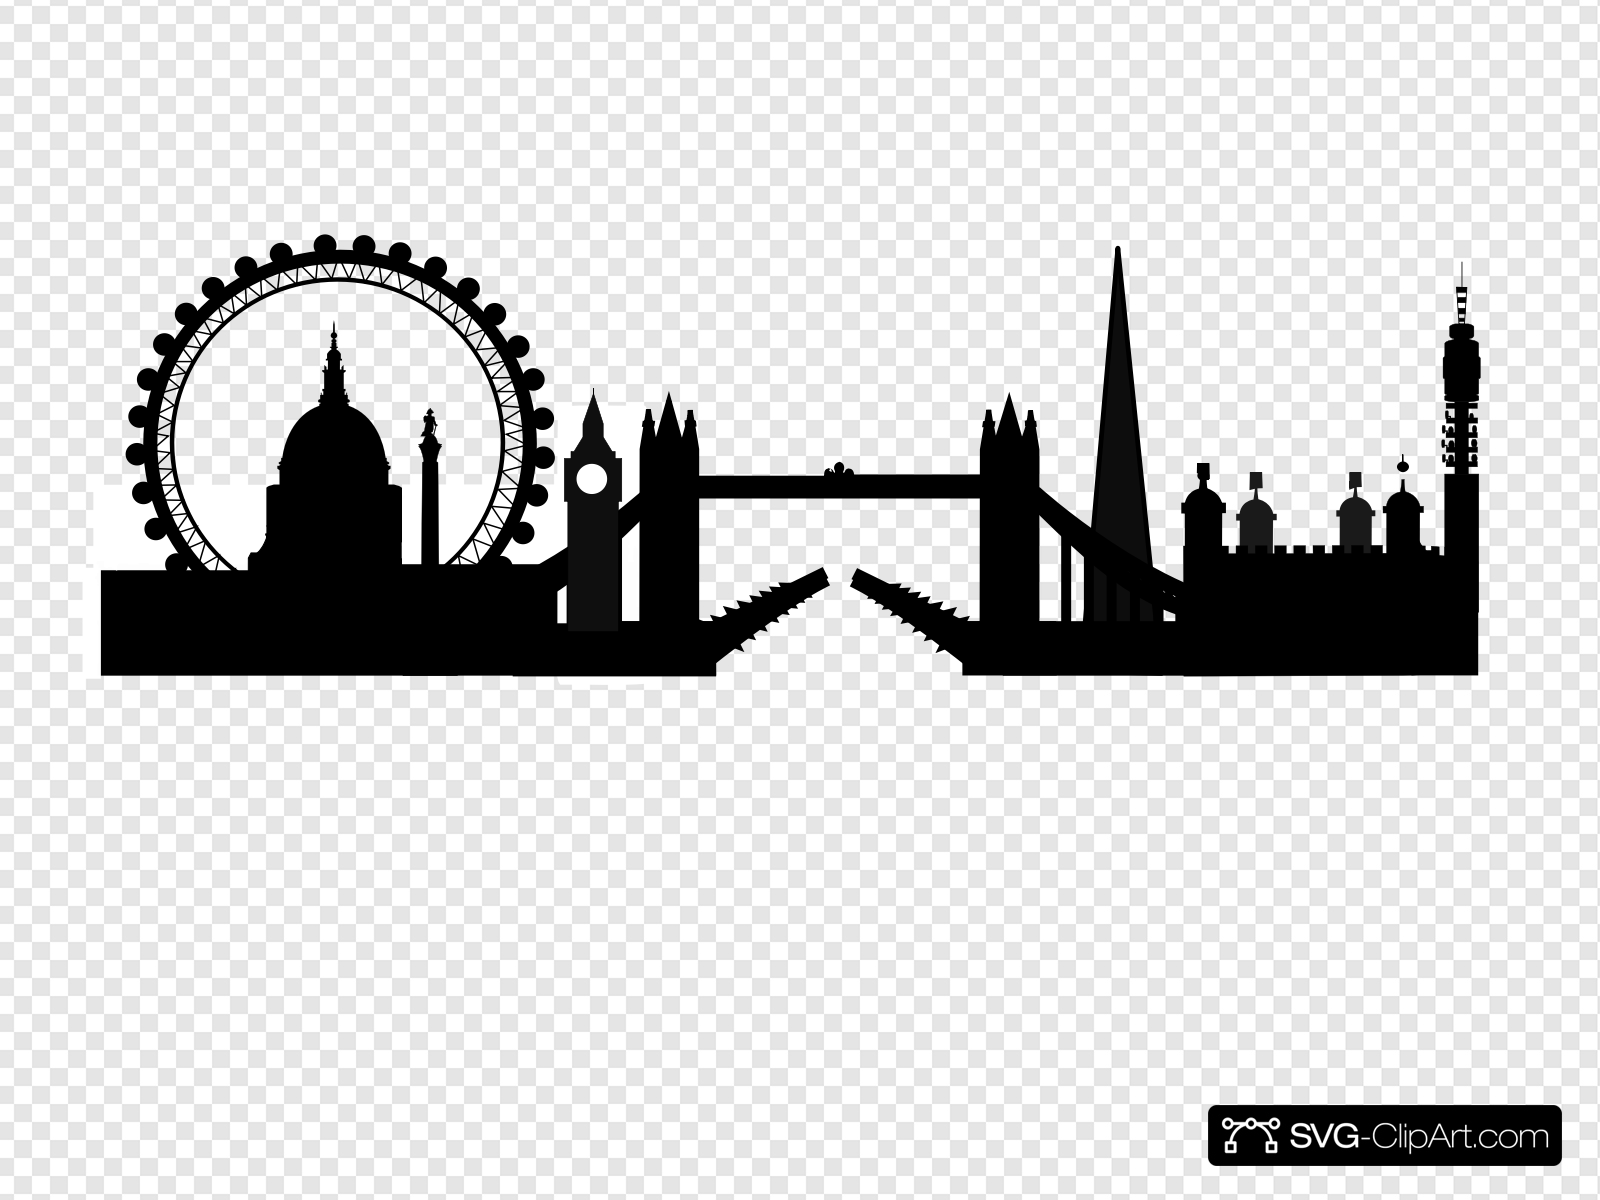 London clipart black and white picture free London Skyline Clip art, Icon and SVG - SVG Clipart picture free